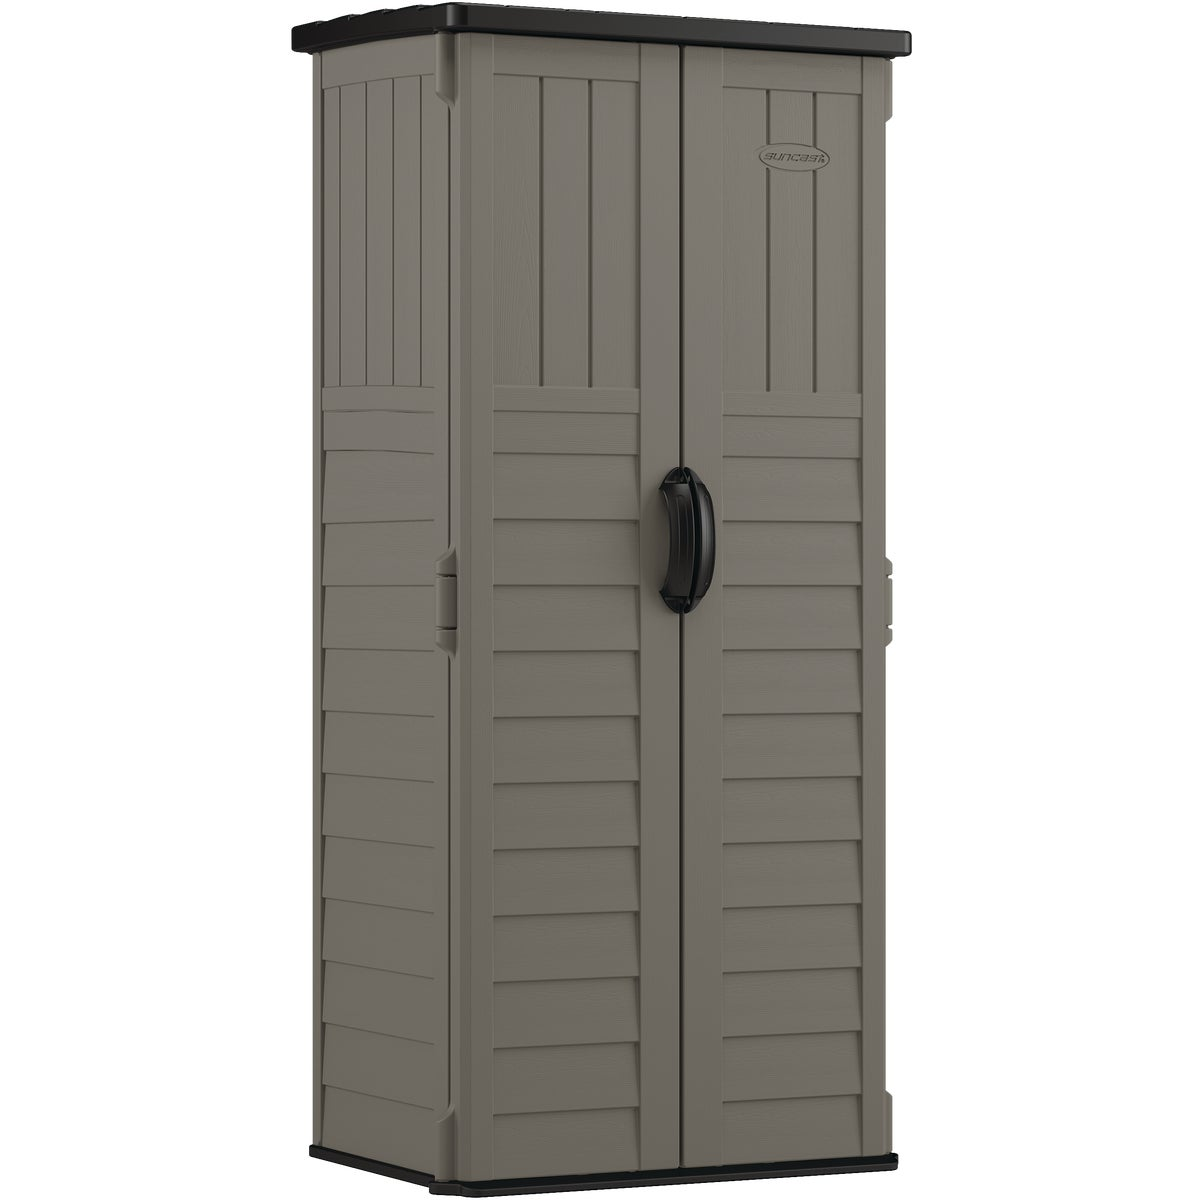 22 CU FT VERTICAL SHED